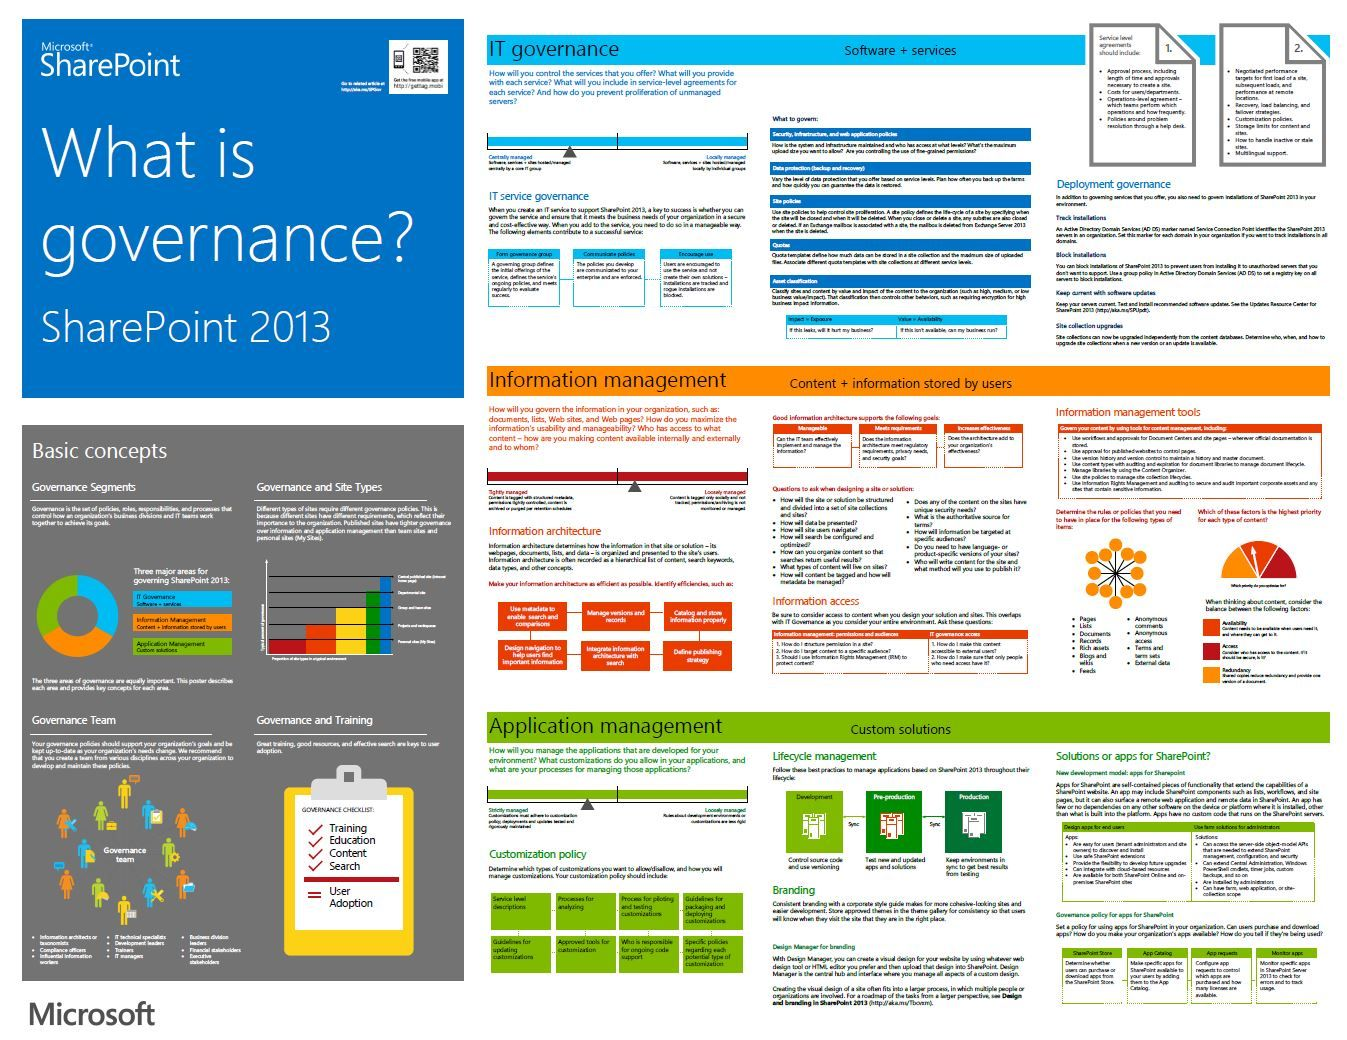 sharepoint governance - Google zoeken | SharePoint | Diagram